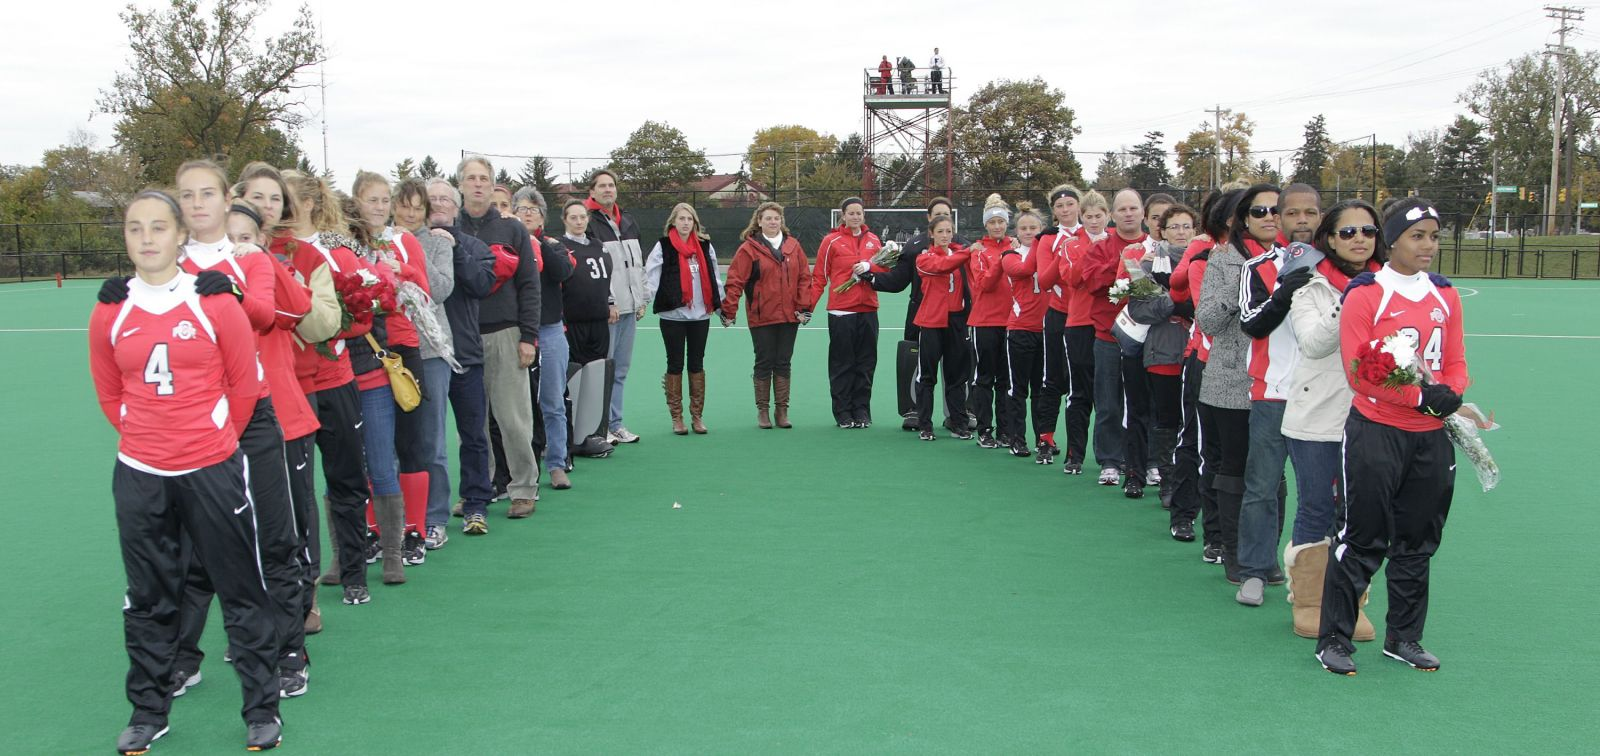 Ohio State field hockey against Indiana Saturday, Oct. 26, 2013, in Columbus, Ohio. (Photo/Jay LaPrete)